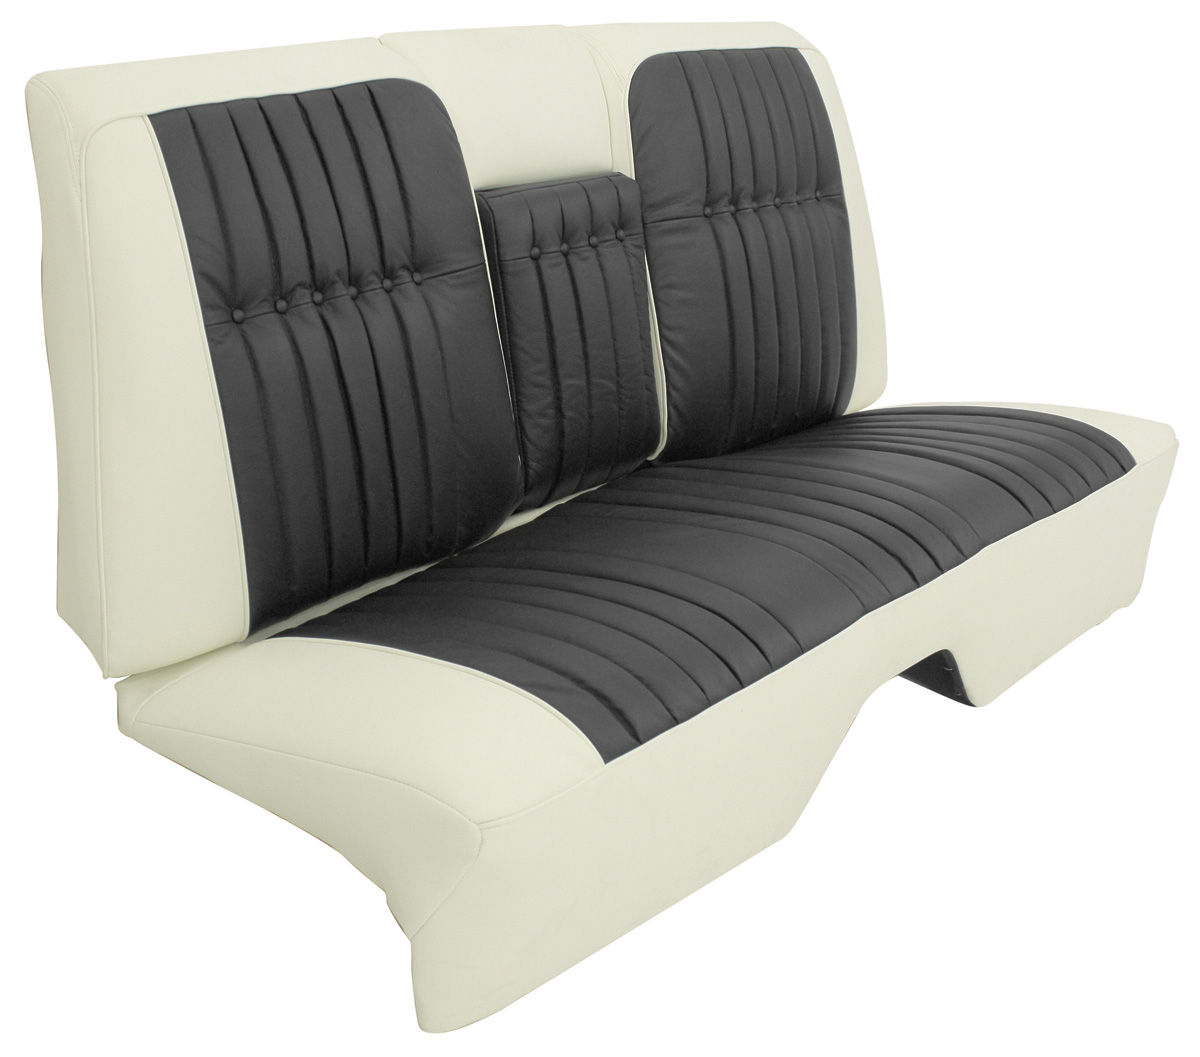 Cadillac Seat Upholstery 1960 Coupe Deville Vinyl Rear